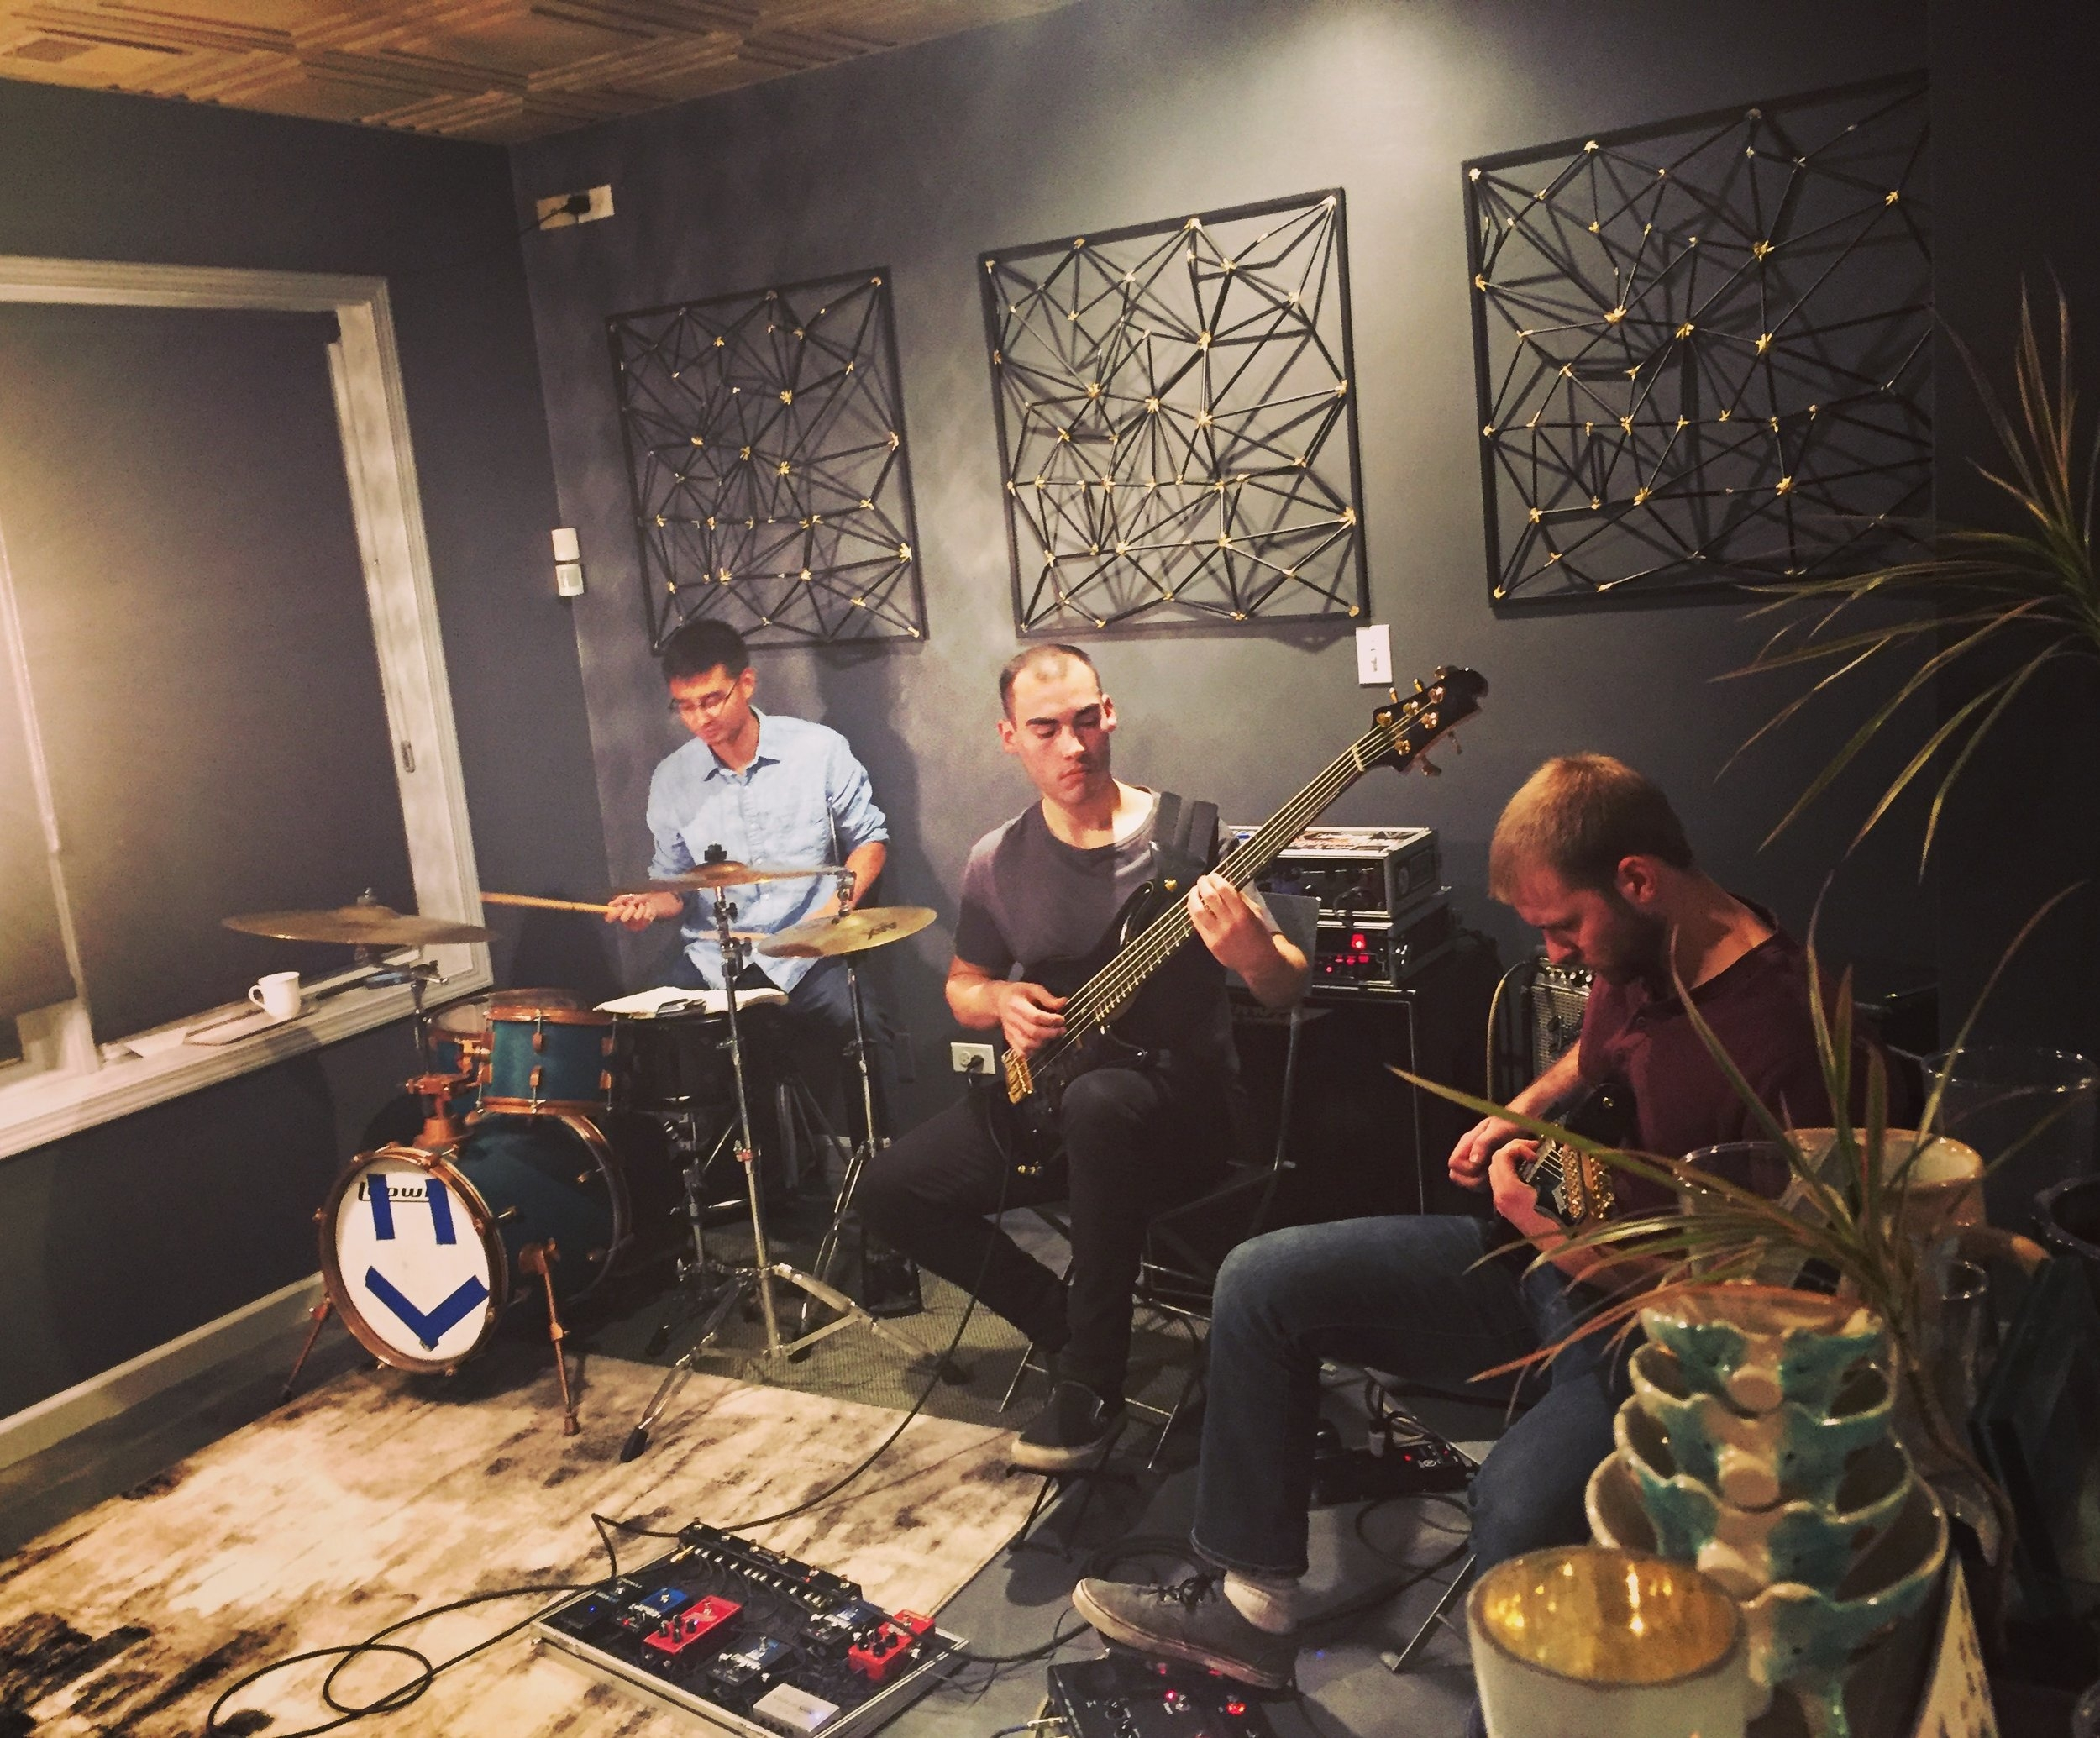 Live Music:Saturday, November 24th at 7pm - What a thrill it was to have Sam, the bassist, Luke. the guitarist, and Jeff, the drummer at Coquelicot! They are so incredibly gifted!Many thanks to those who came to support us and the band!